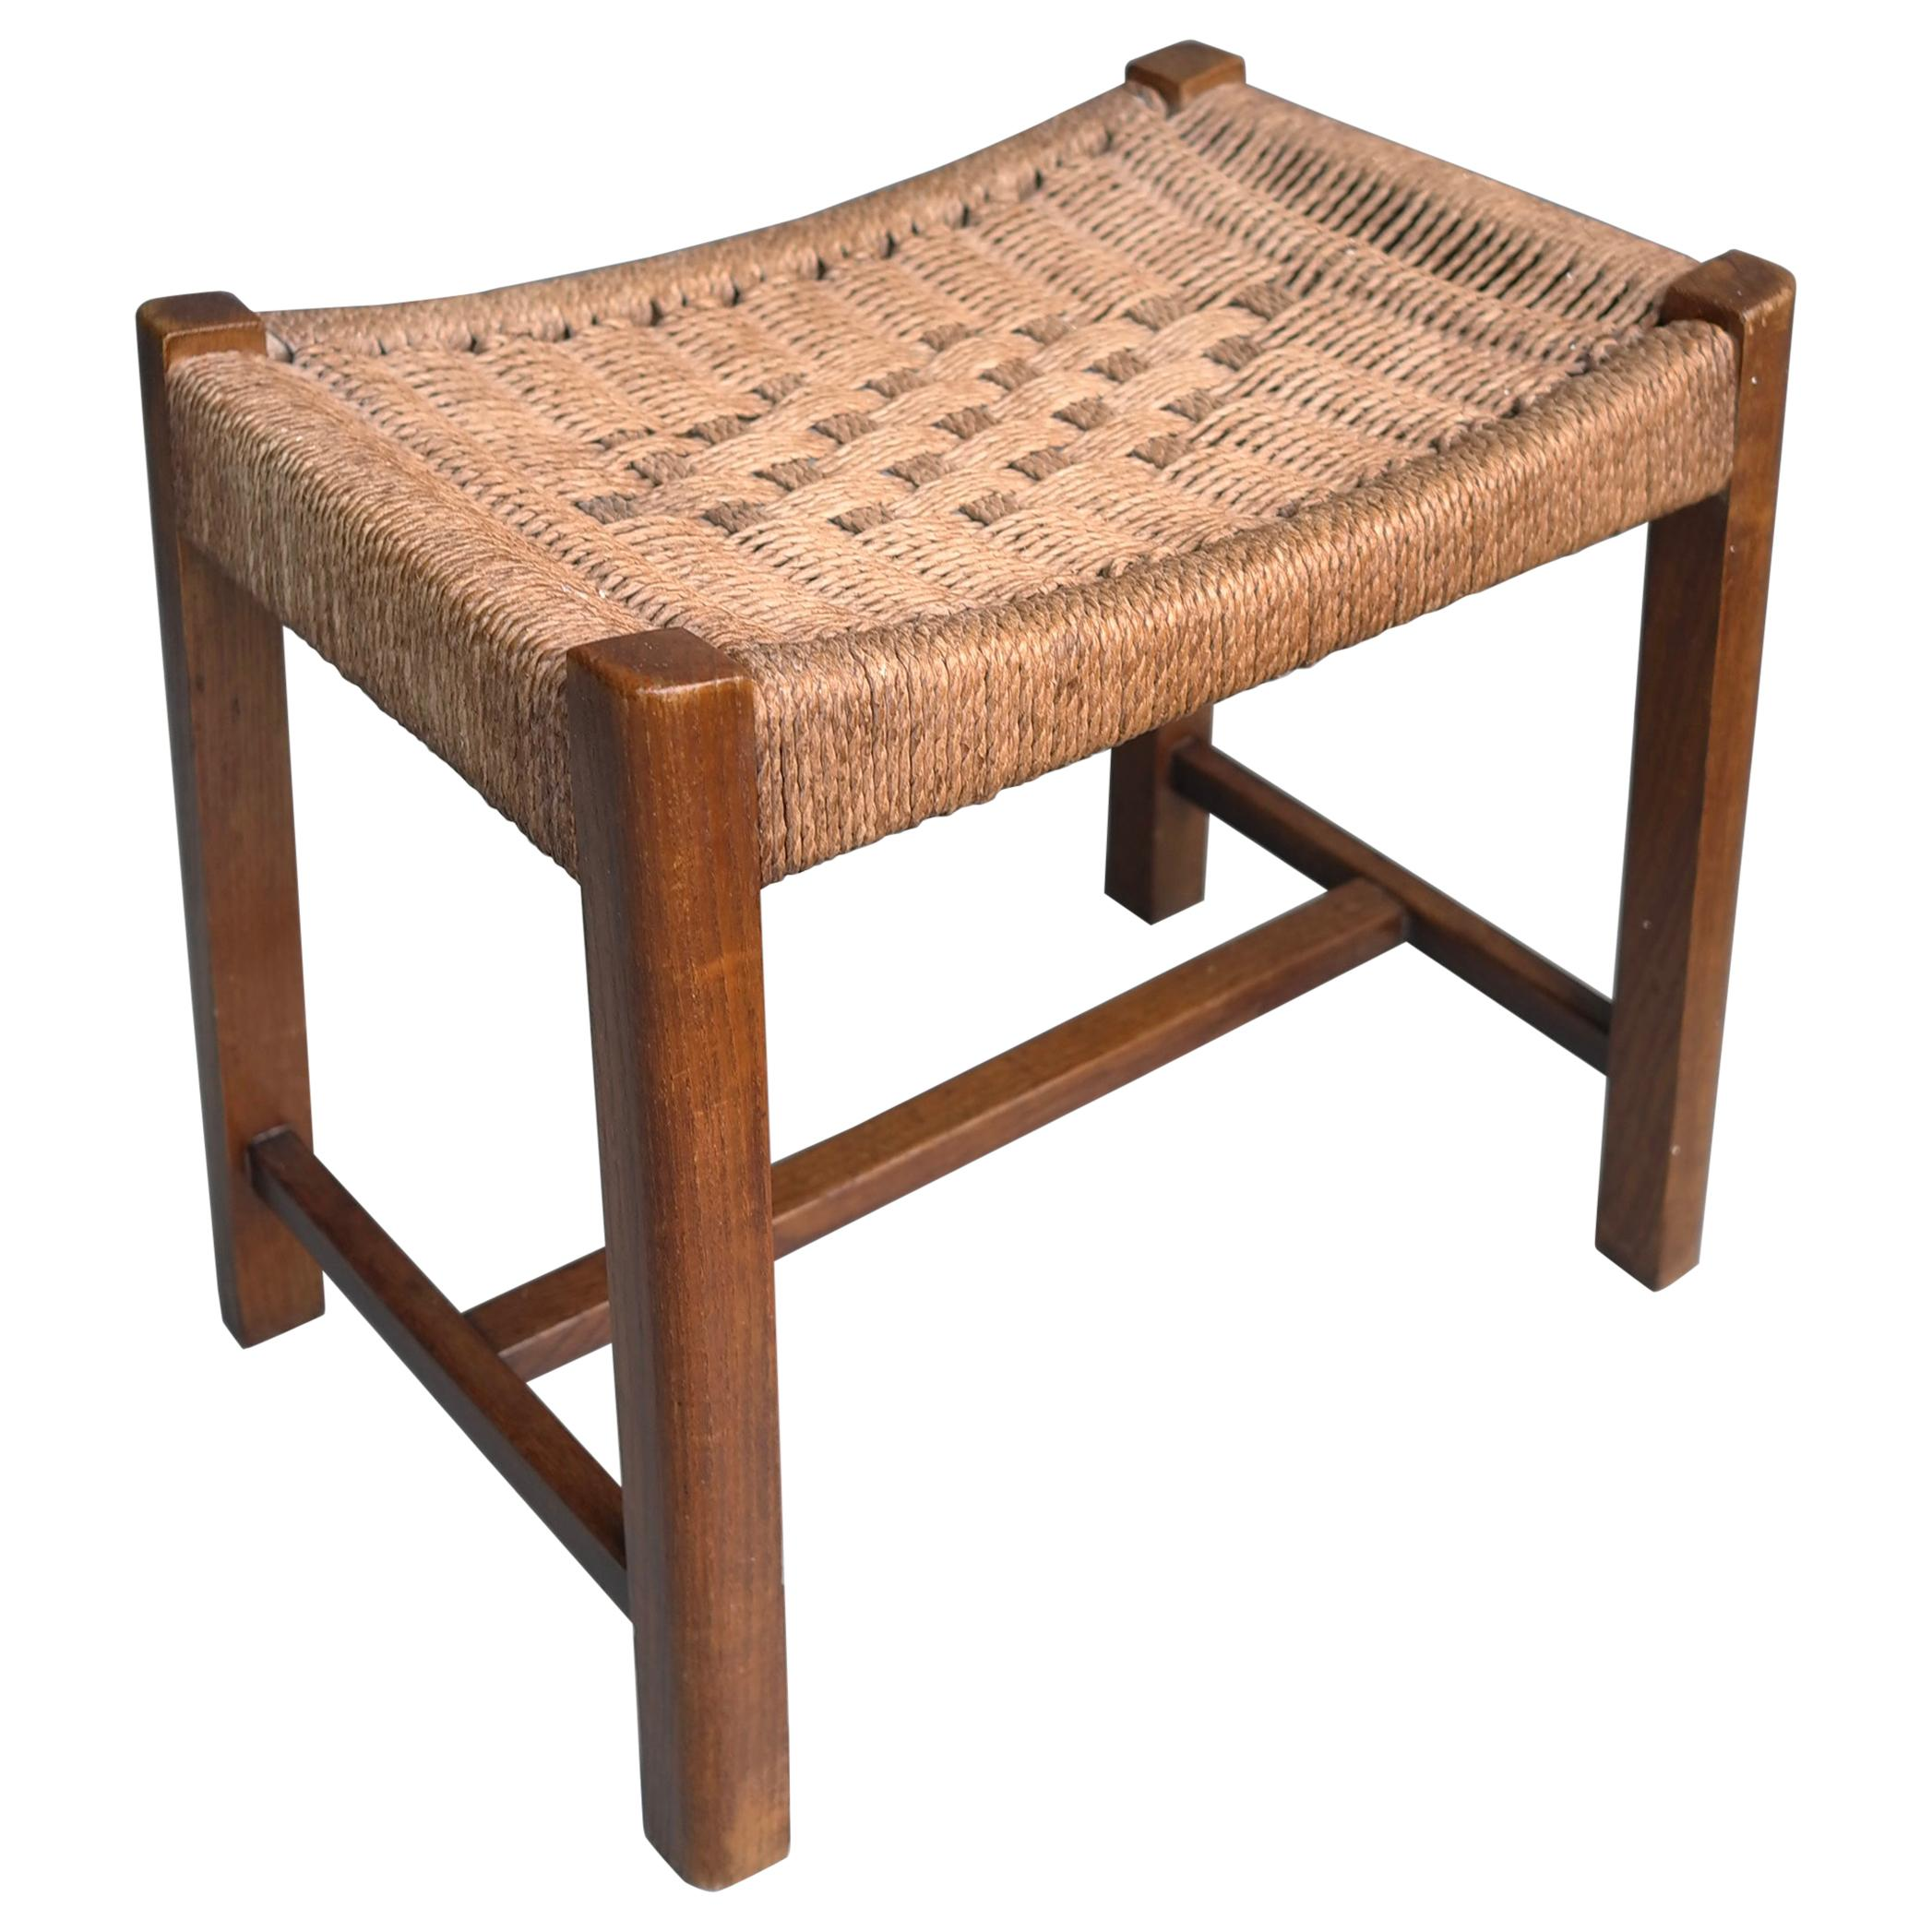 Oak and Woven Rope Stool by Audoux Minet France 1950s